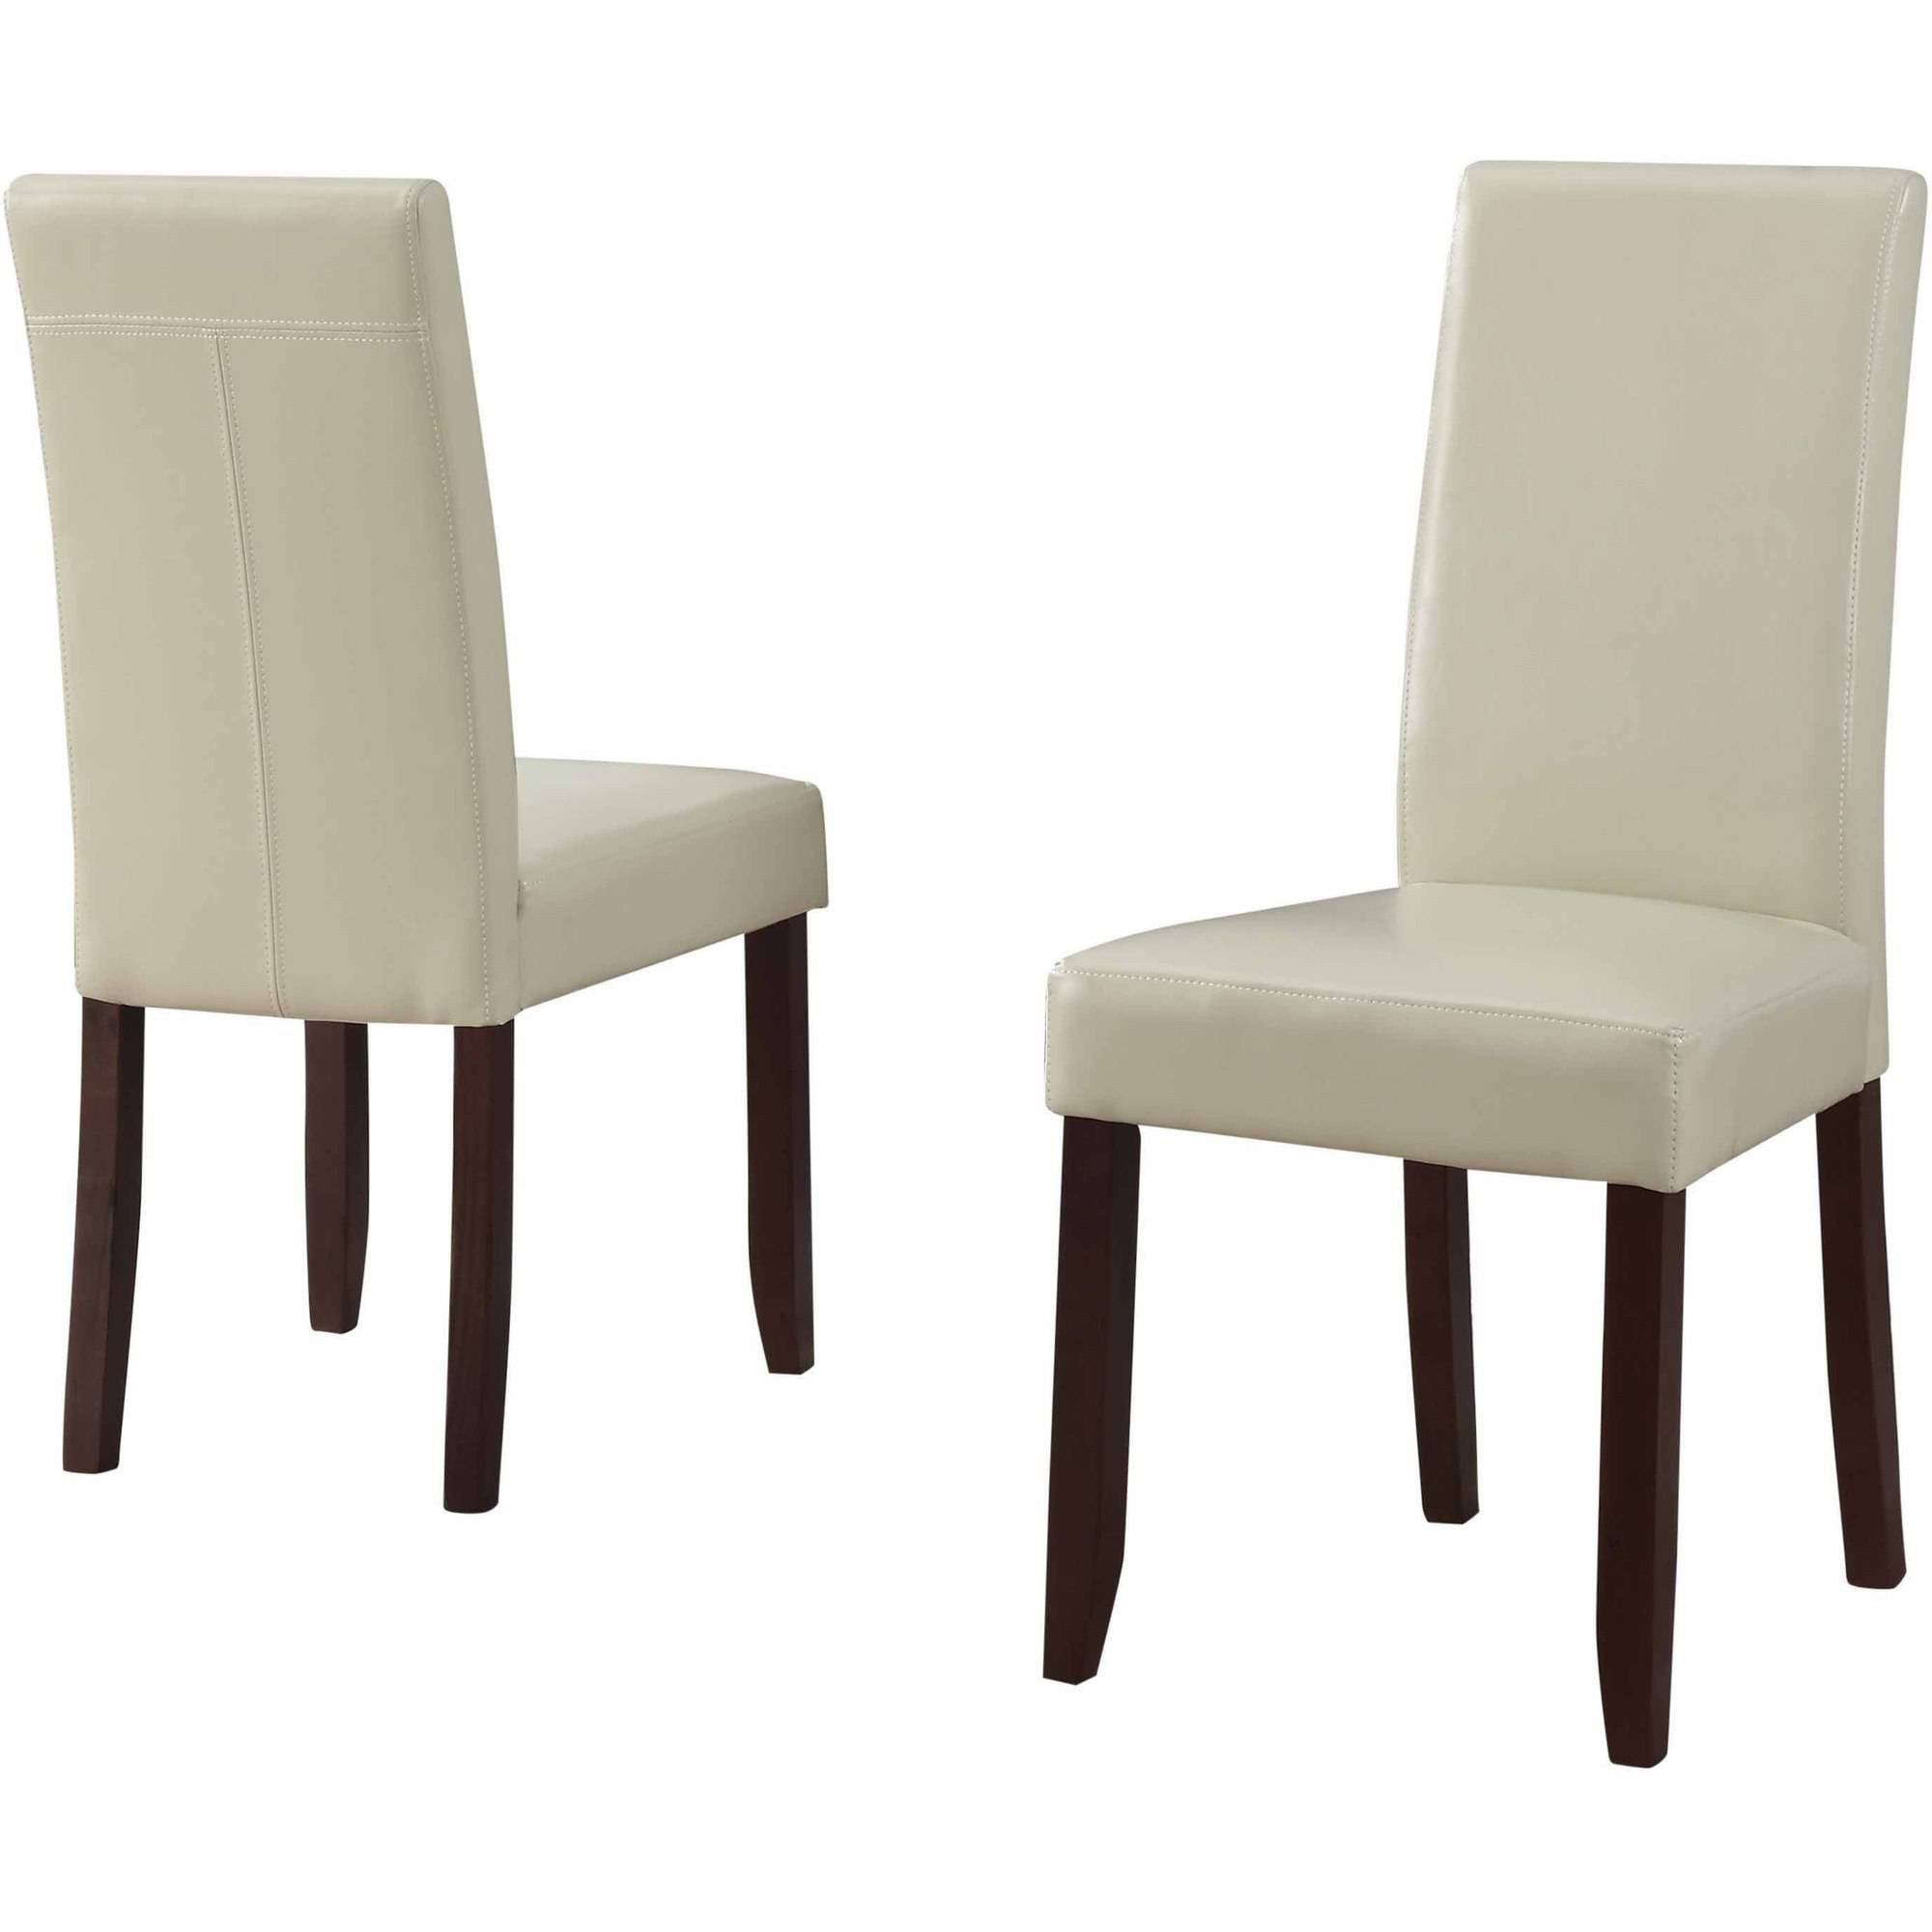 Dining chairs for White kitchen dining chairs